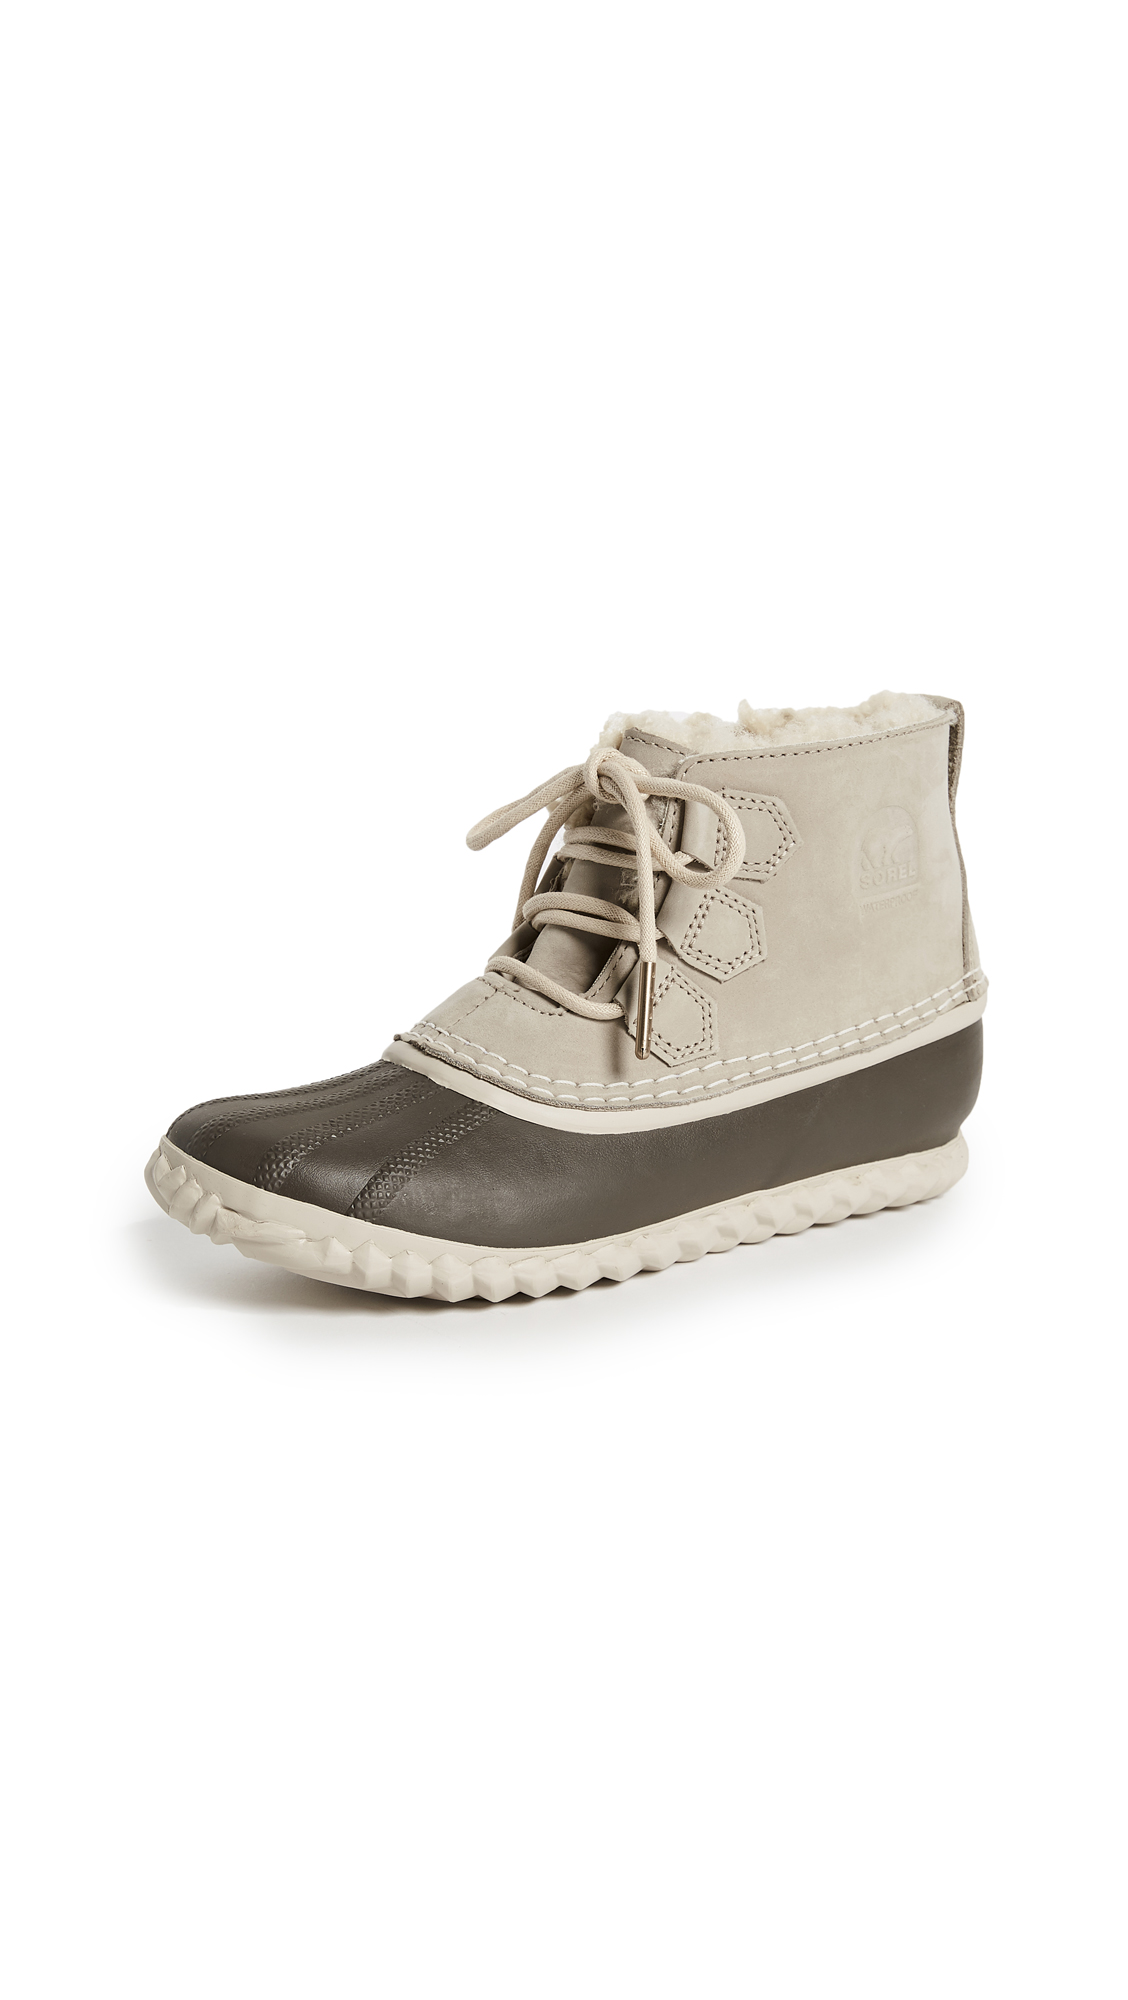 Sorel Out N About Shearling Lux Booties - Ancient Fossil/Mud